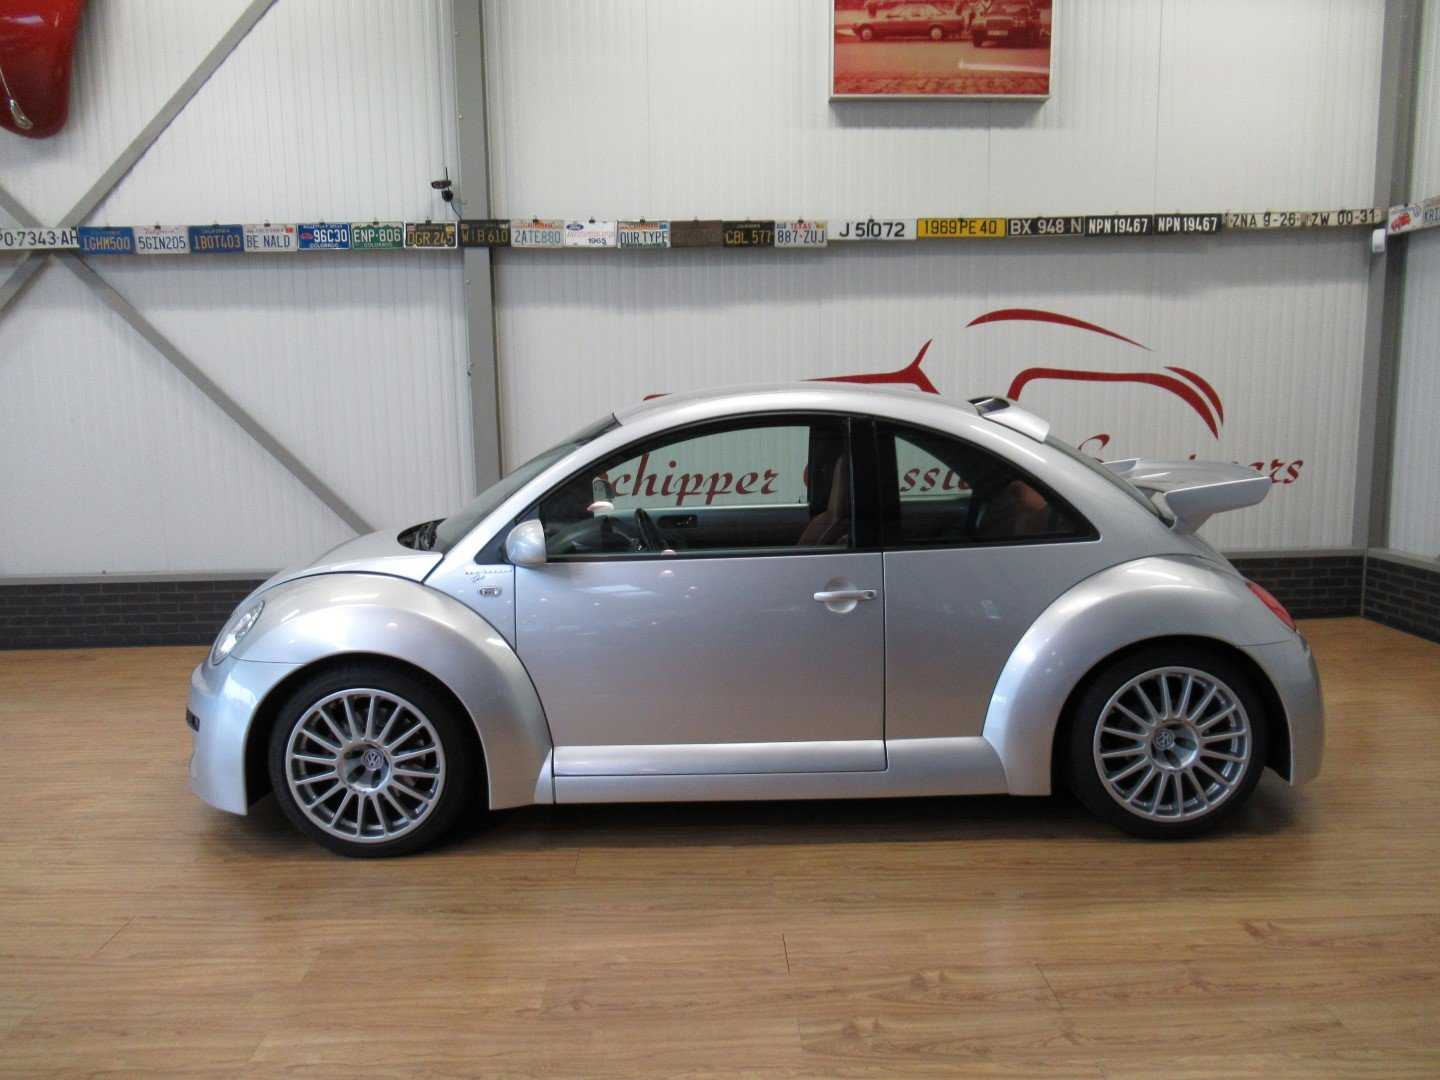 2002 Volkswagen Beetle RSI Limited Edition no. 56 of 250 For Sale (picture 3 of 6)